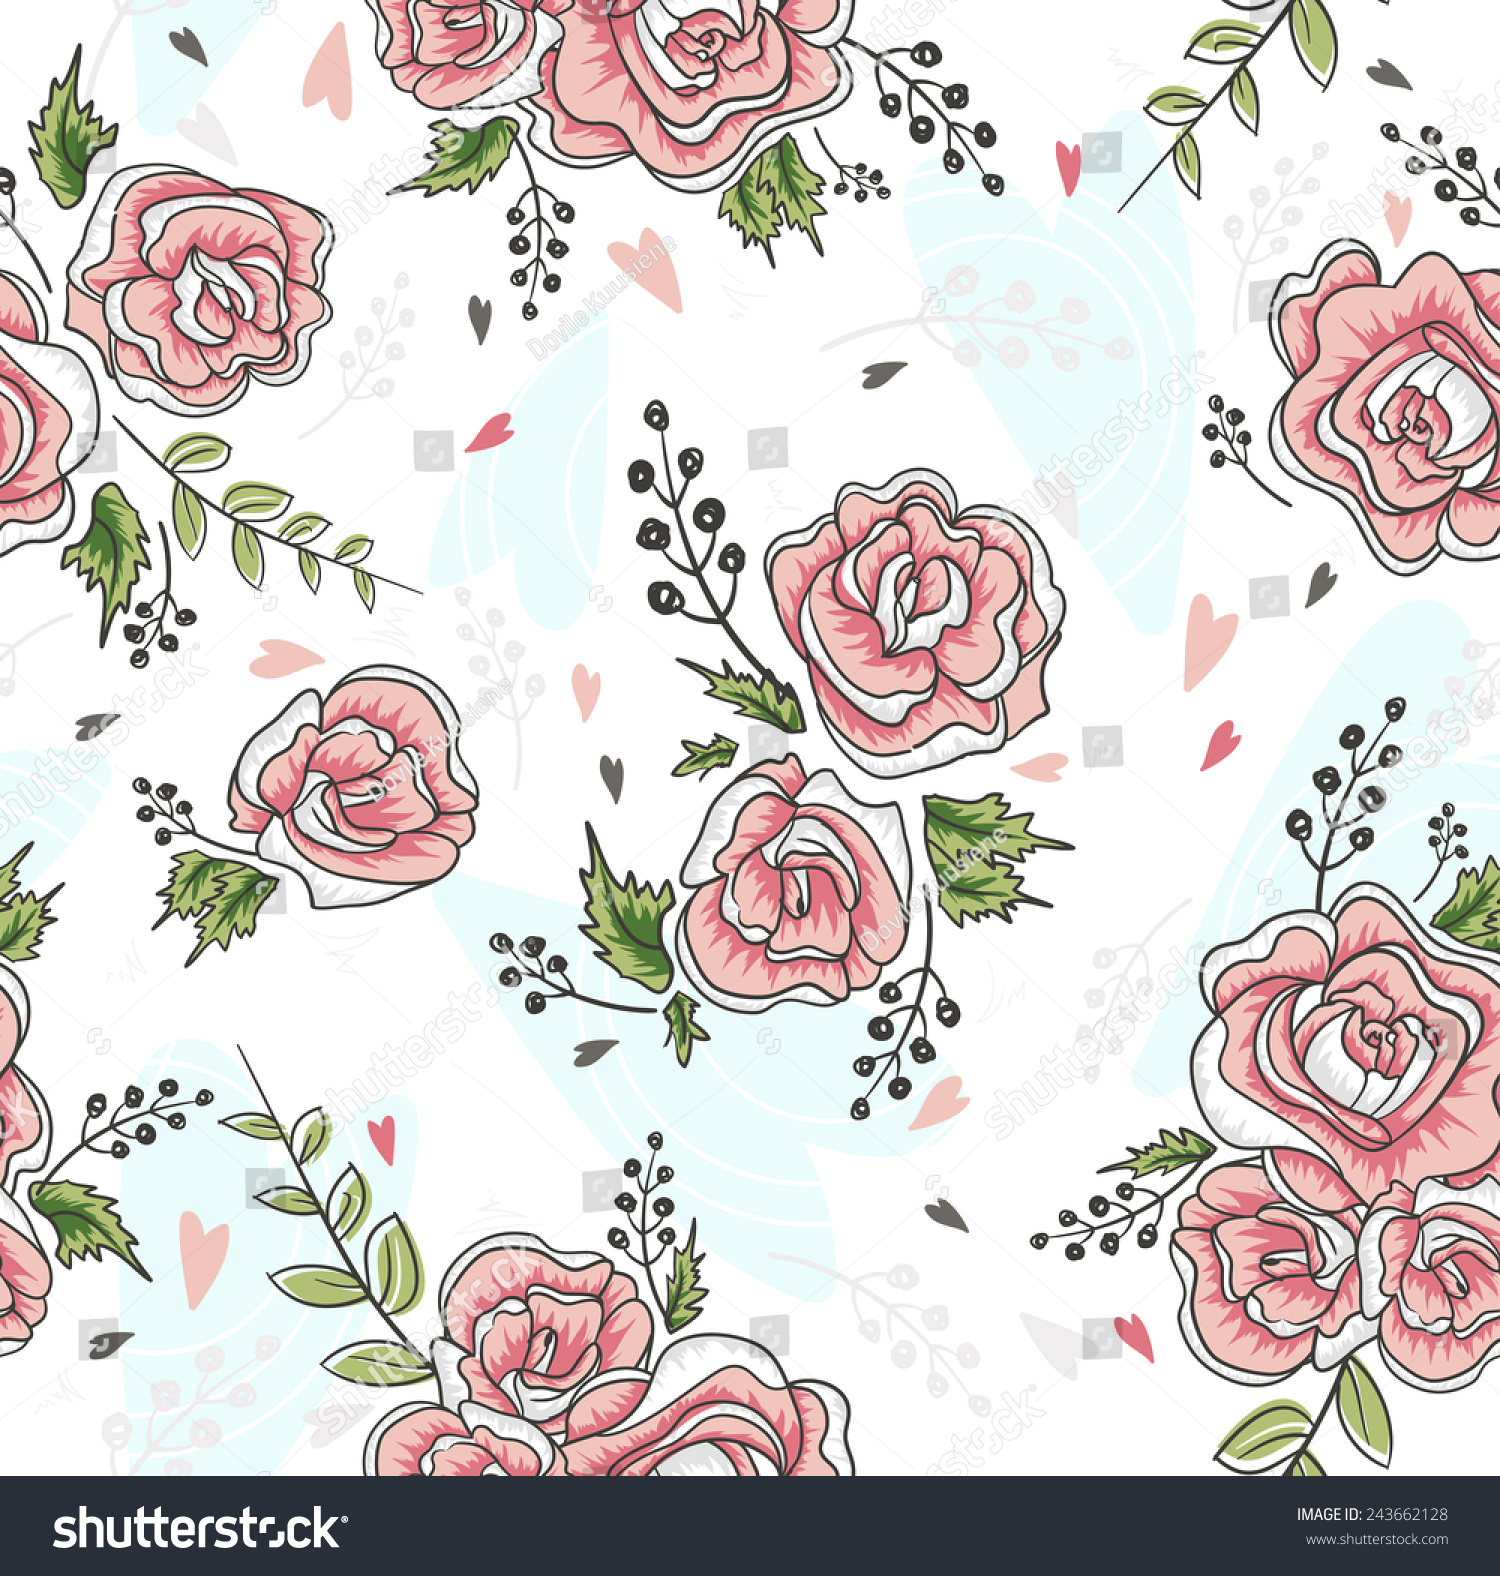 Cute Seamless Vintage Rose Pattern Background Stock Vector ...